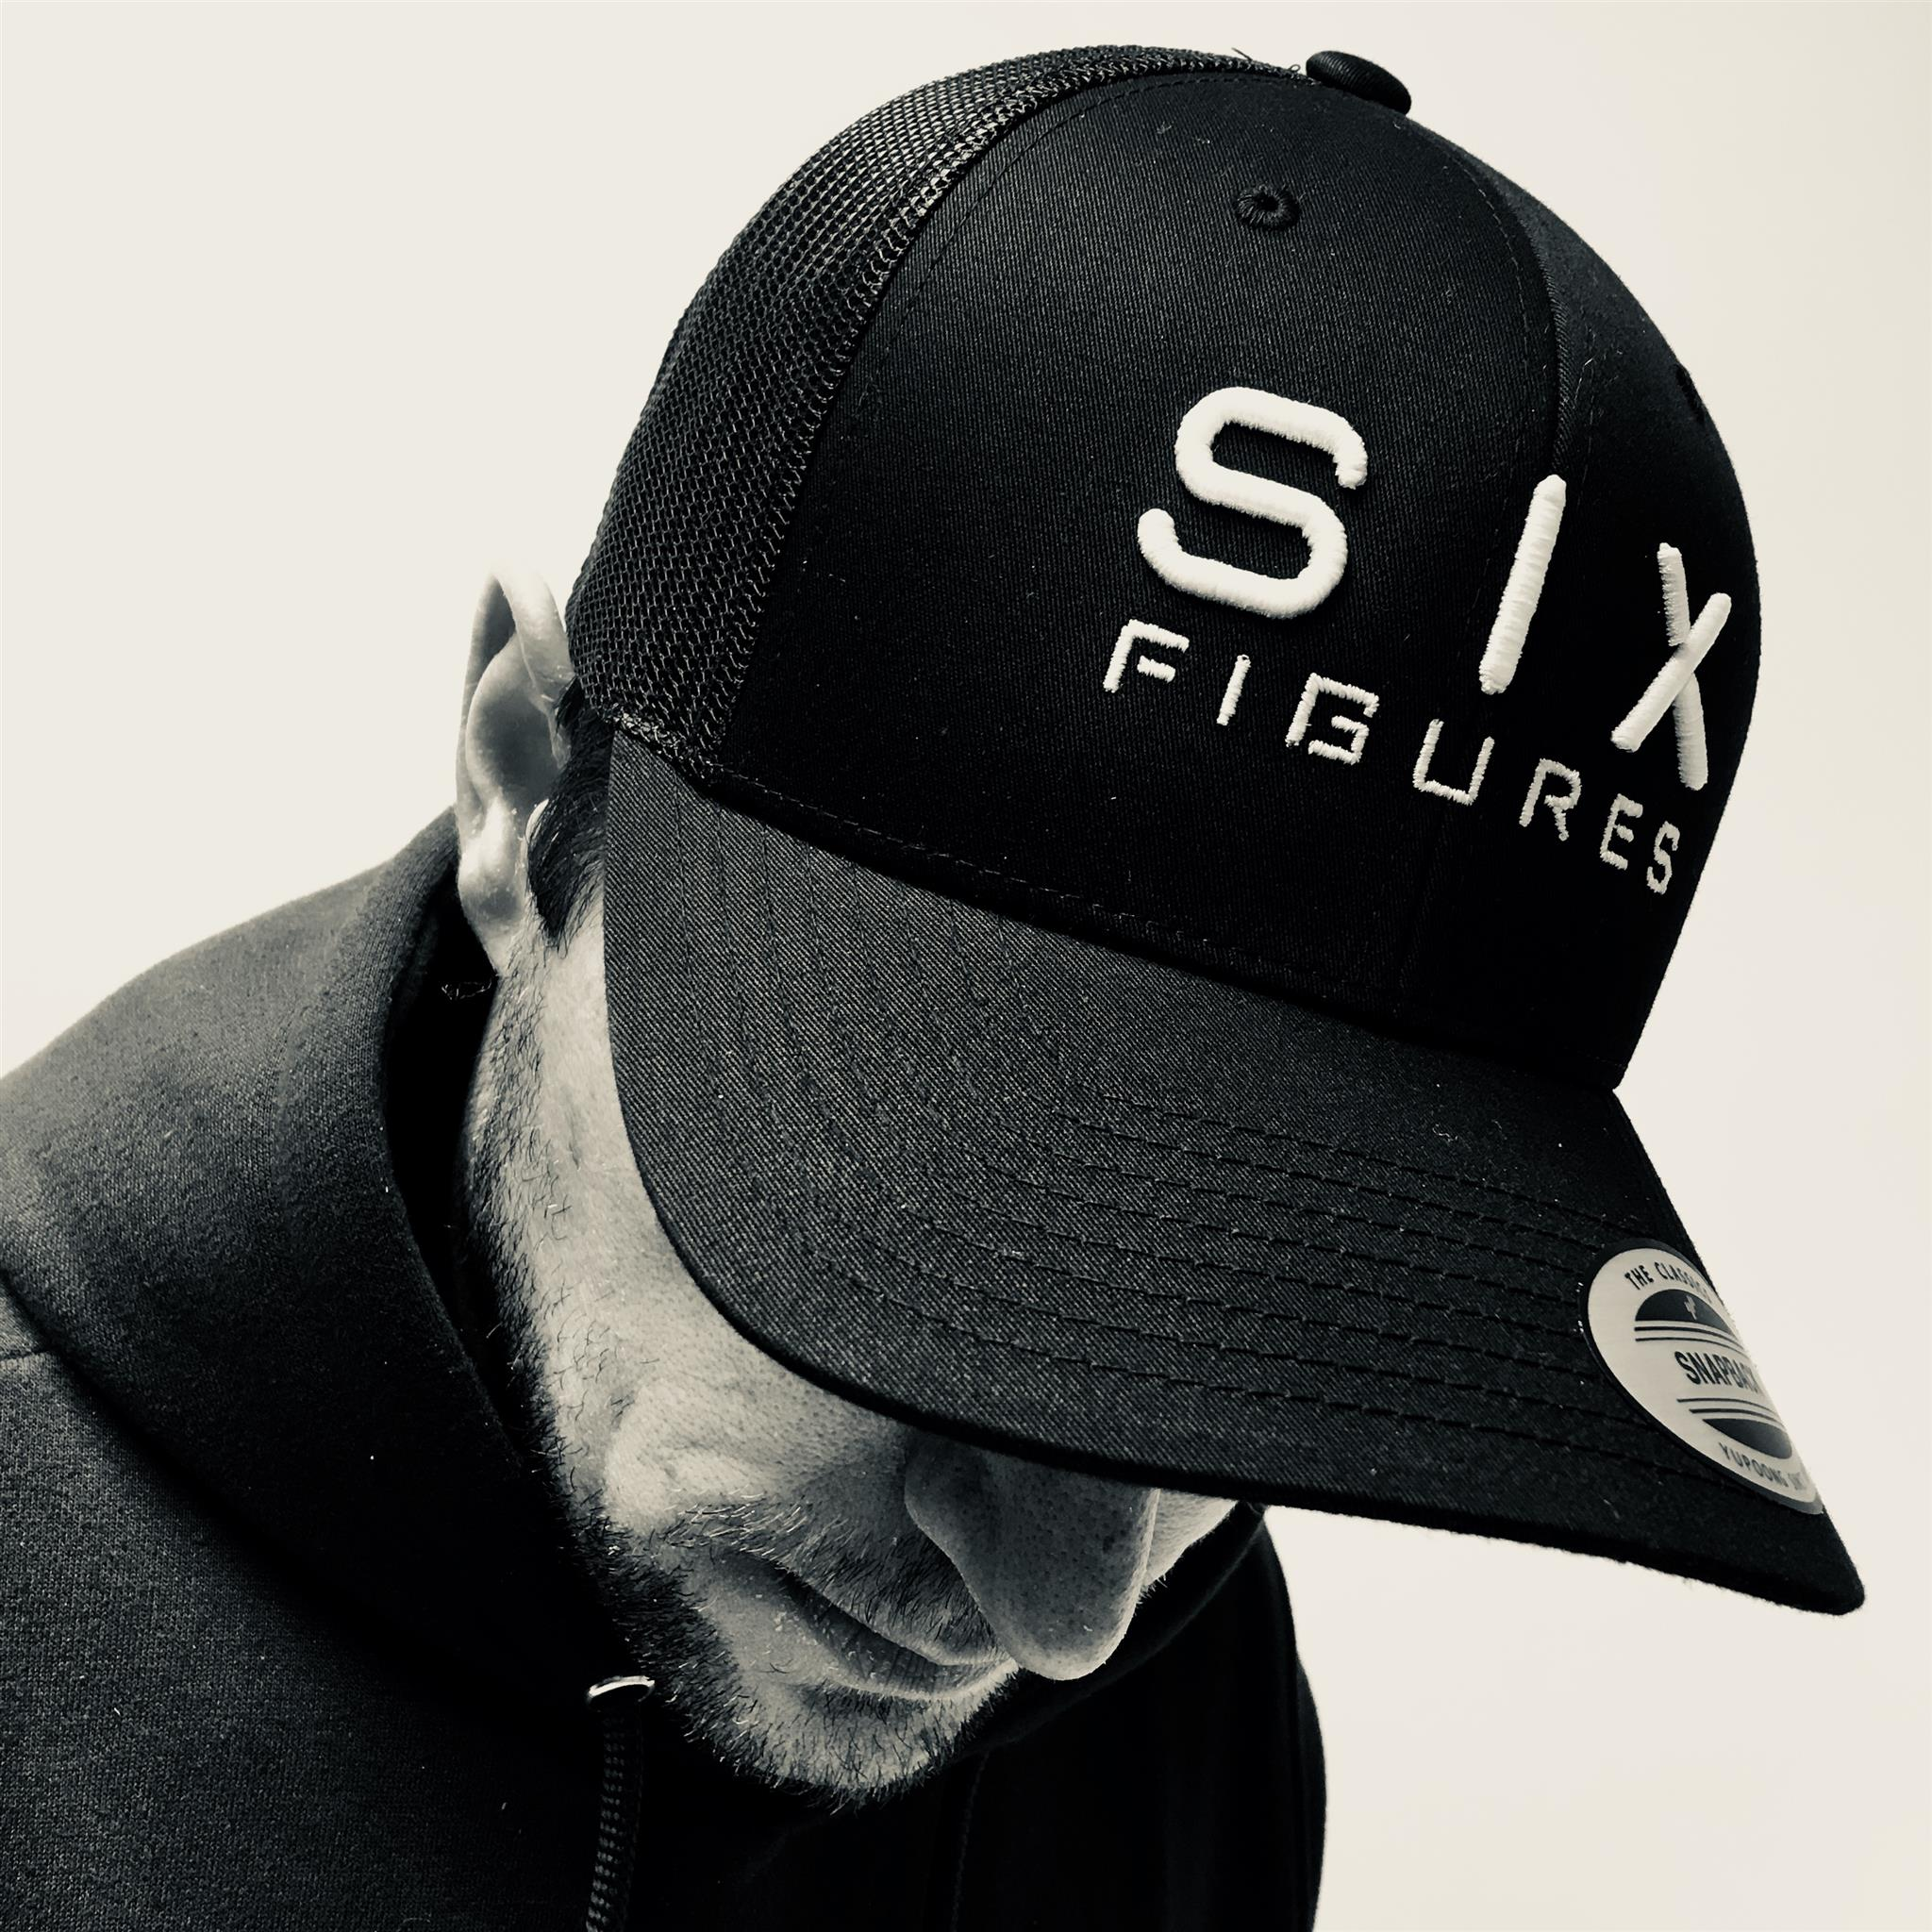 SIX FIGURES Trucker Cap - Black + White - Six Figures Official